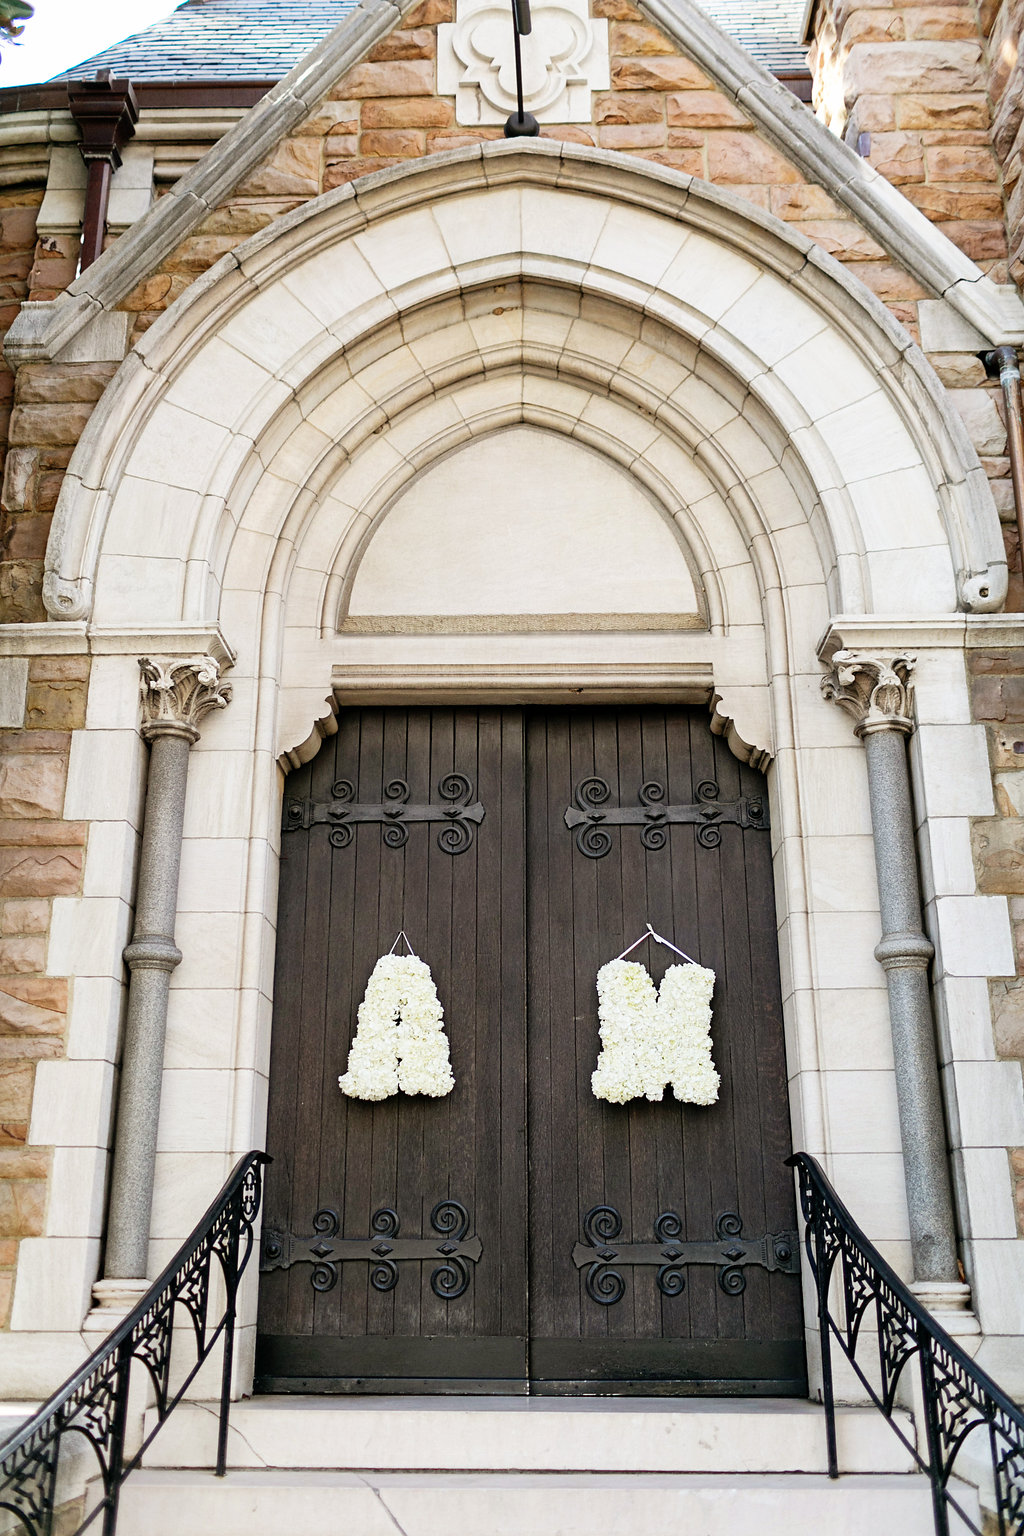 church wedding decor ideas flower wreath monogram letters on doors entrance